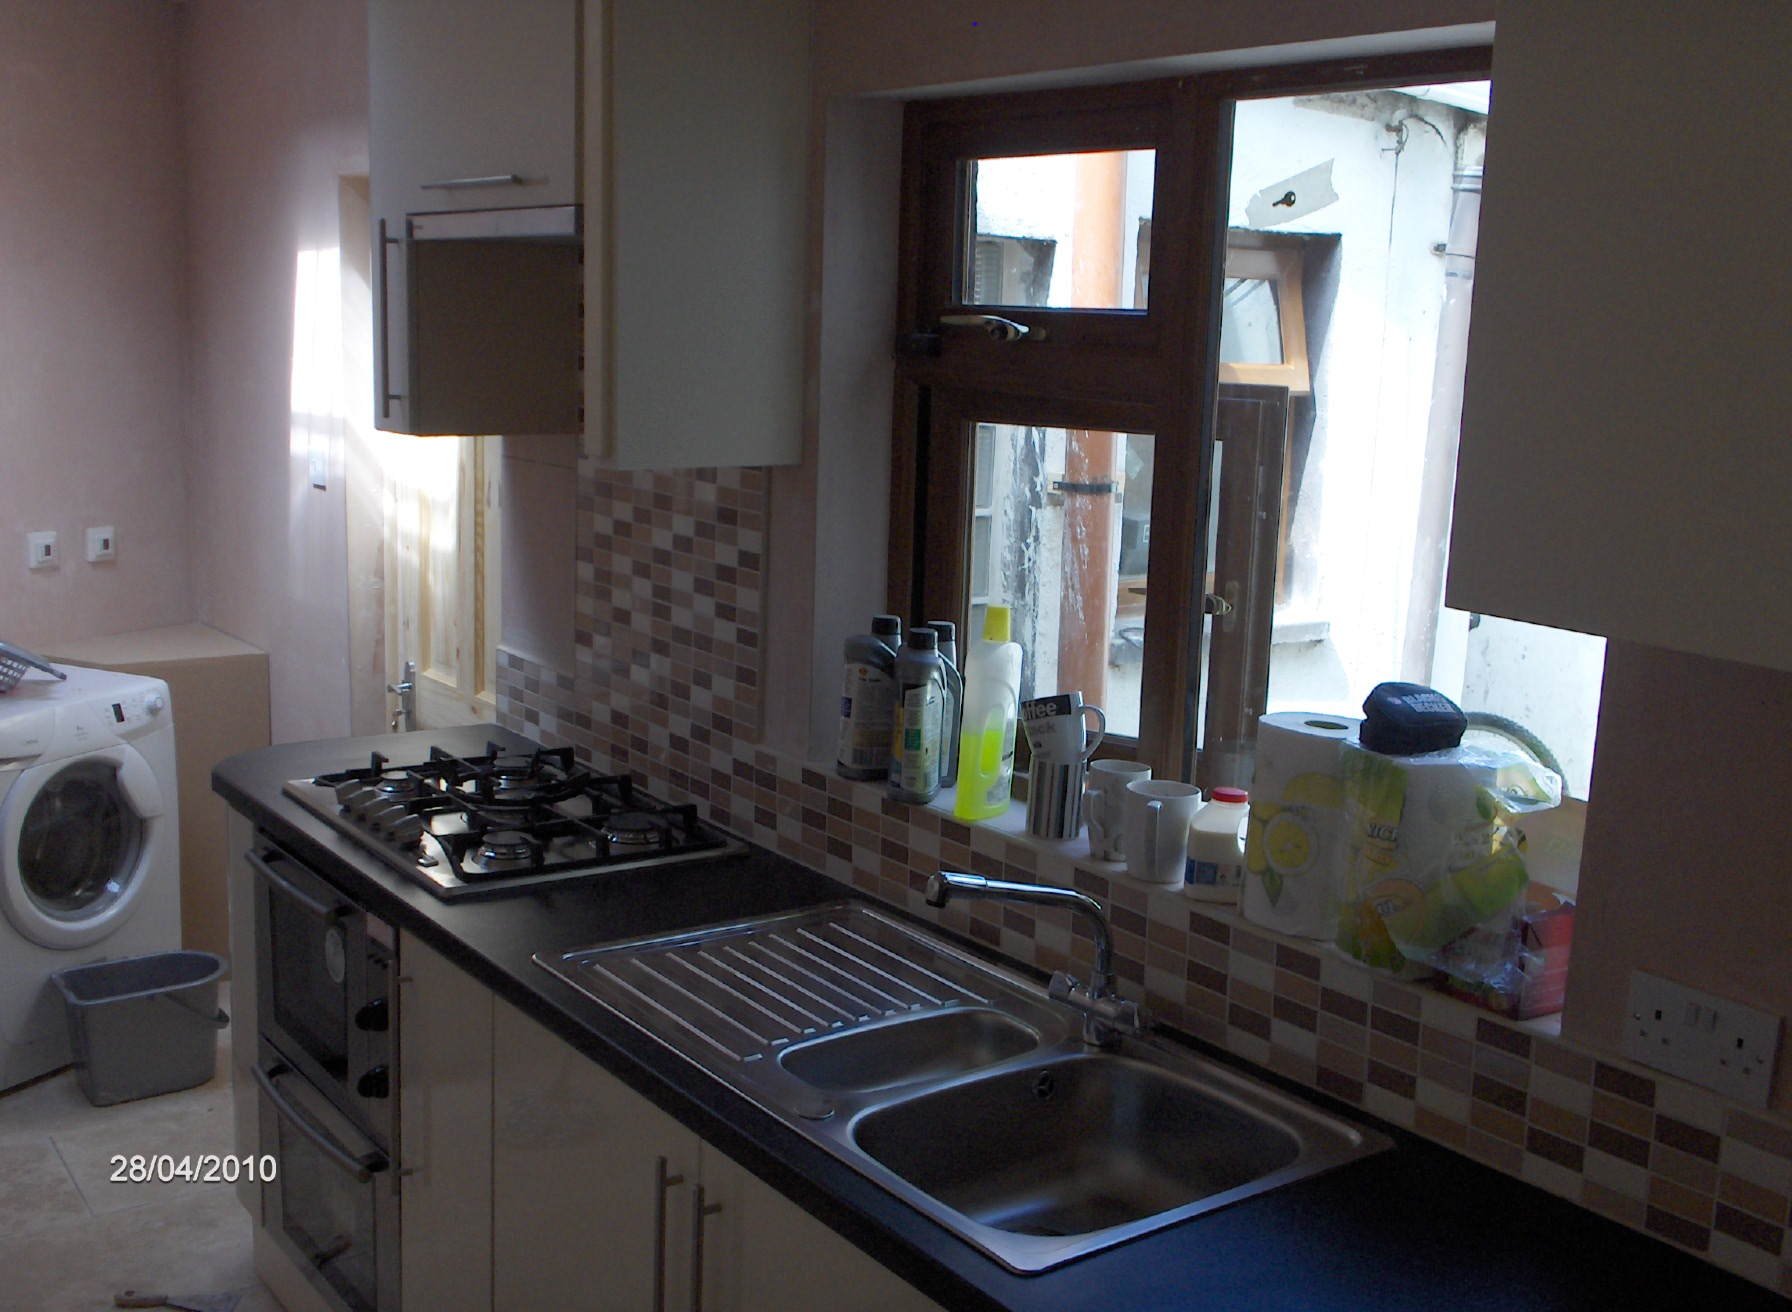 fitted kitchen, with frankie sink, and gas oven and hob